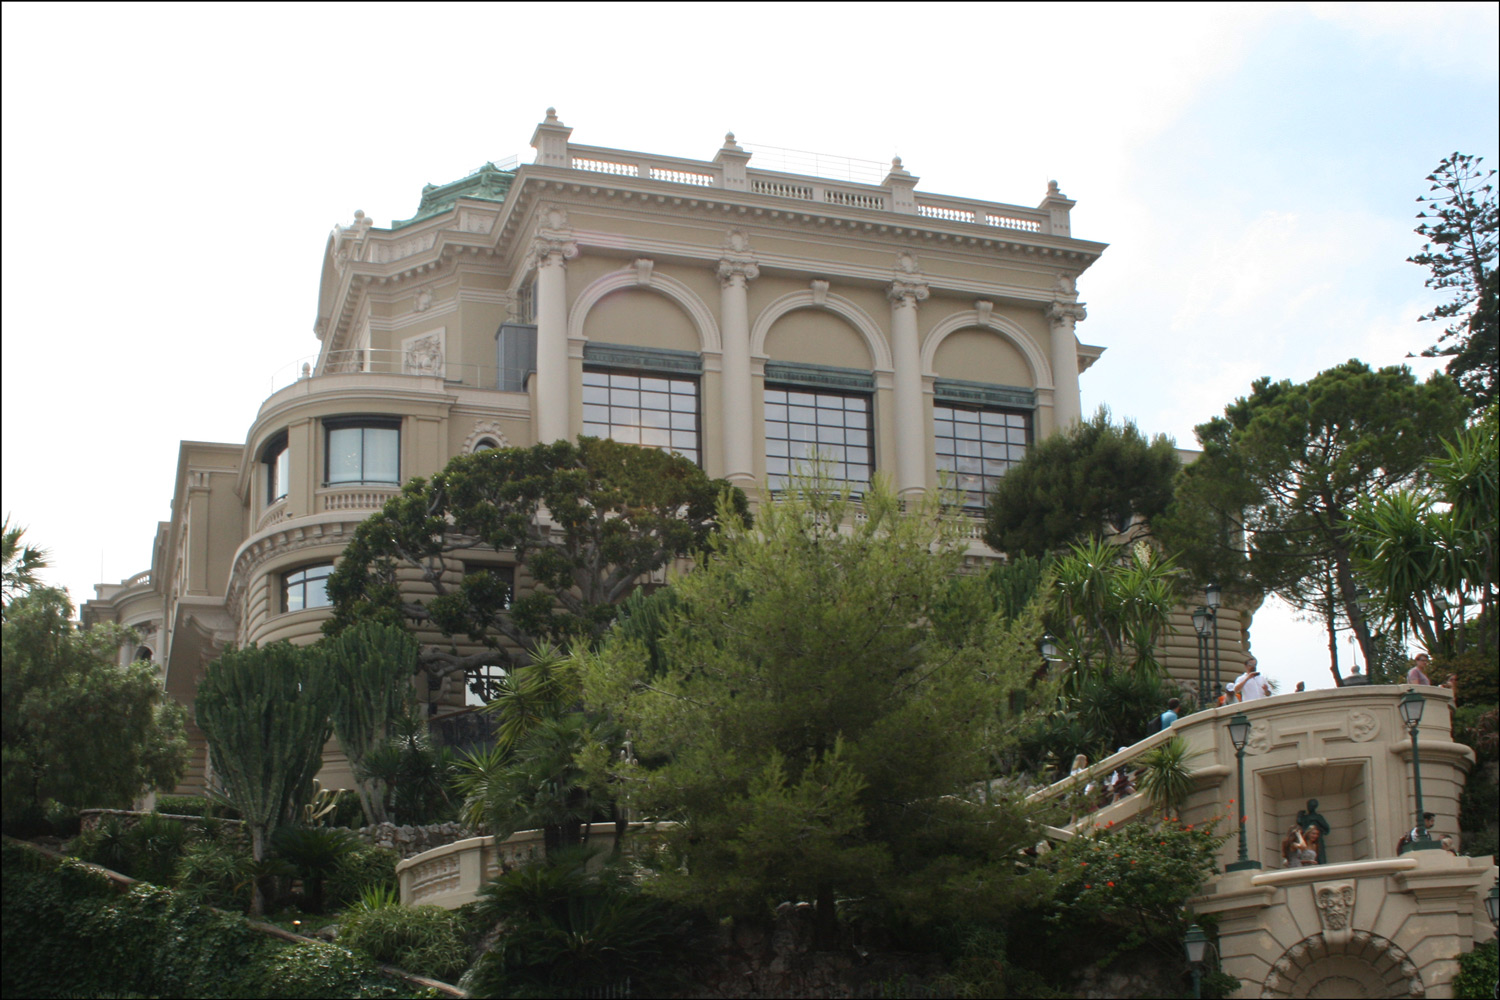 The Grand Casino in Monte Carlo